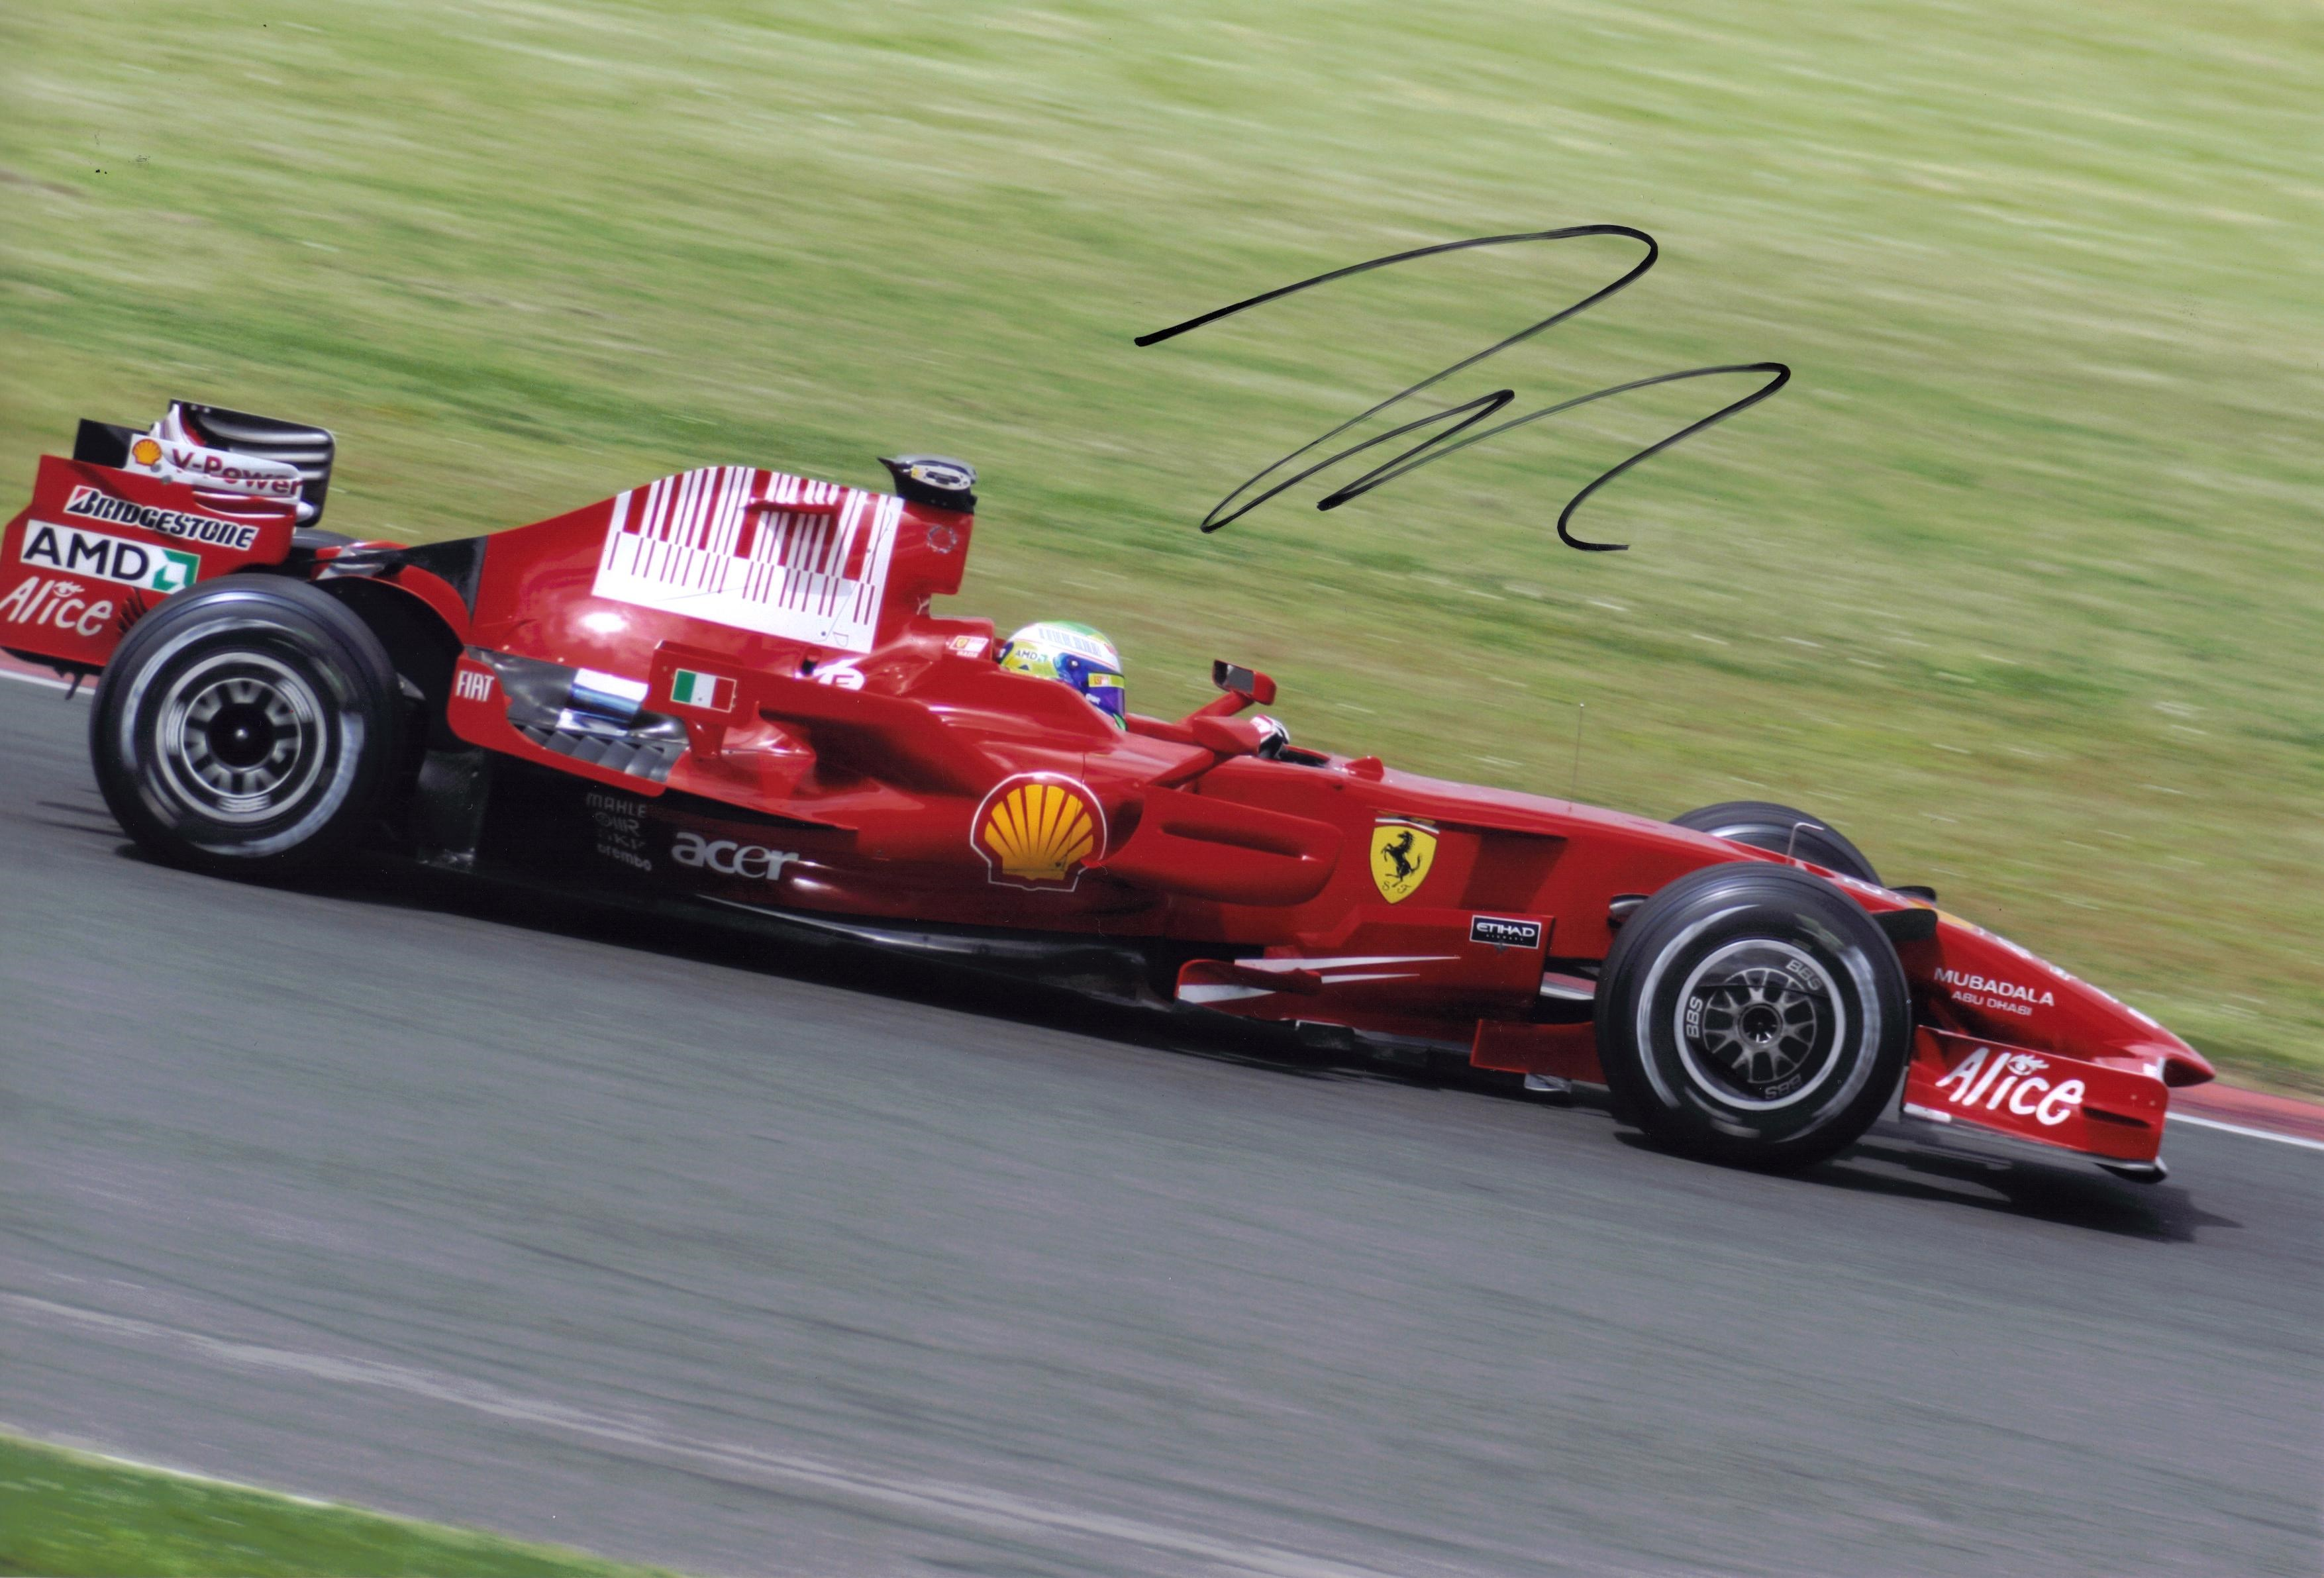 FELIPE MASSA SIGNED FERRARI PICTURE